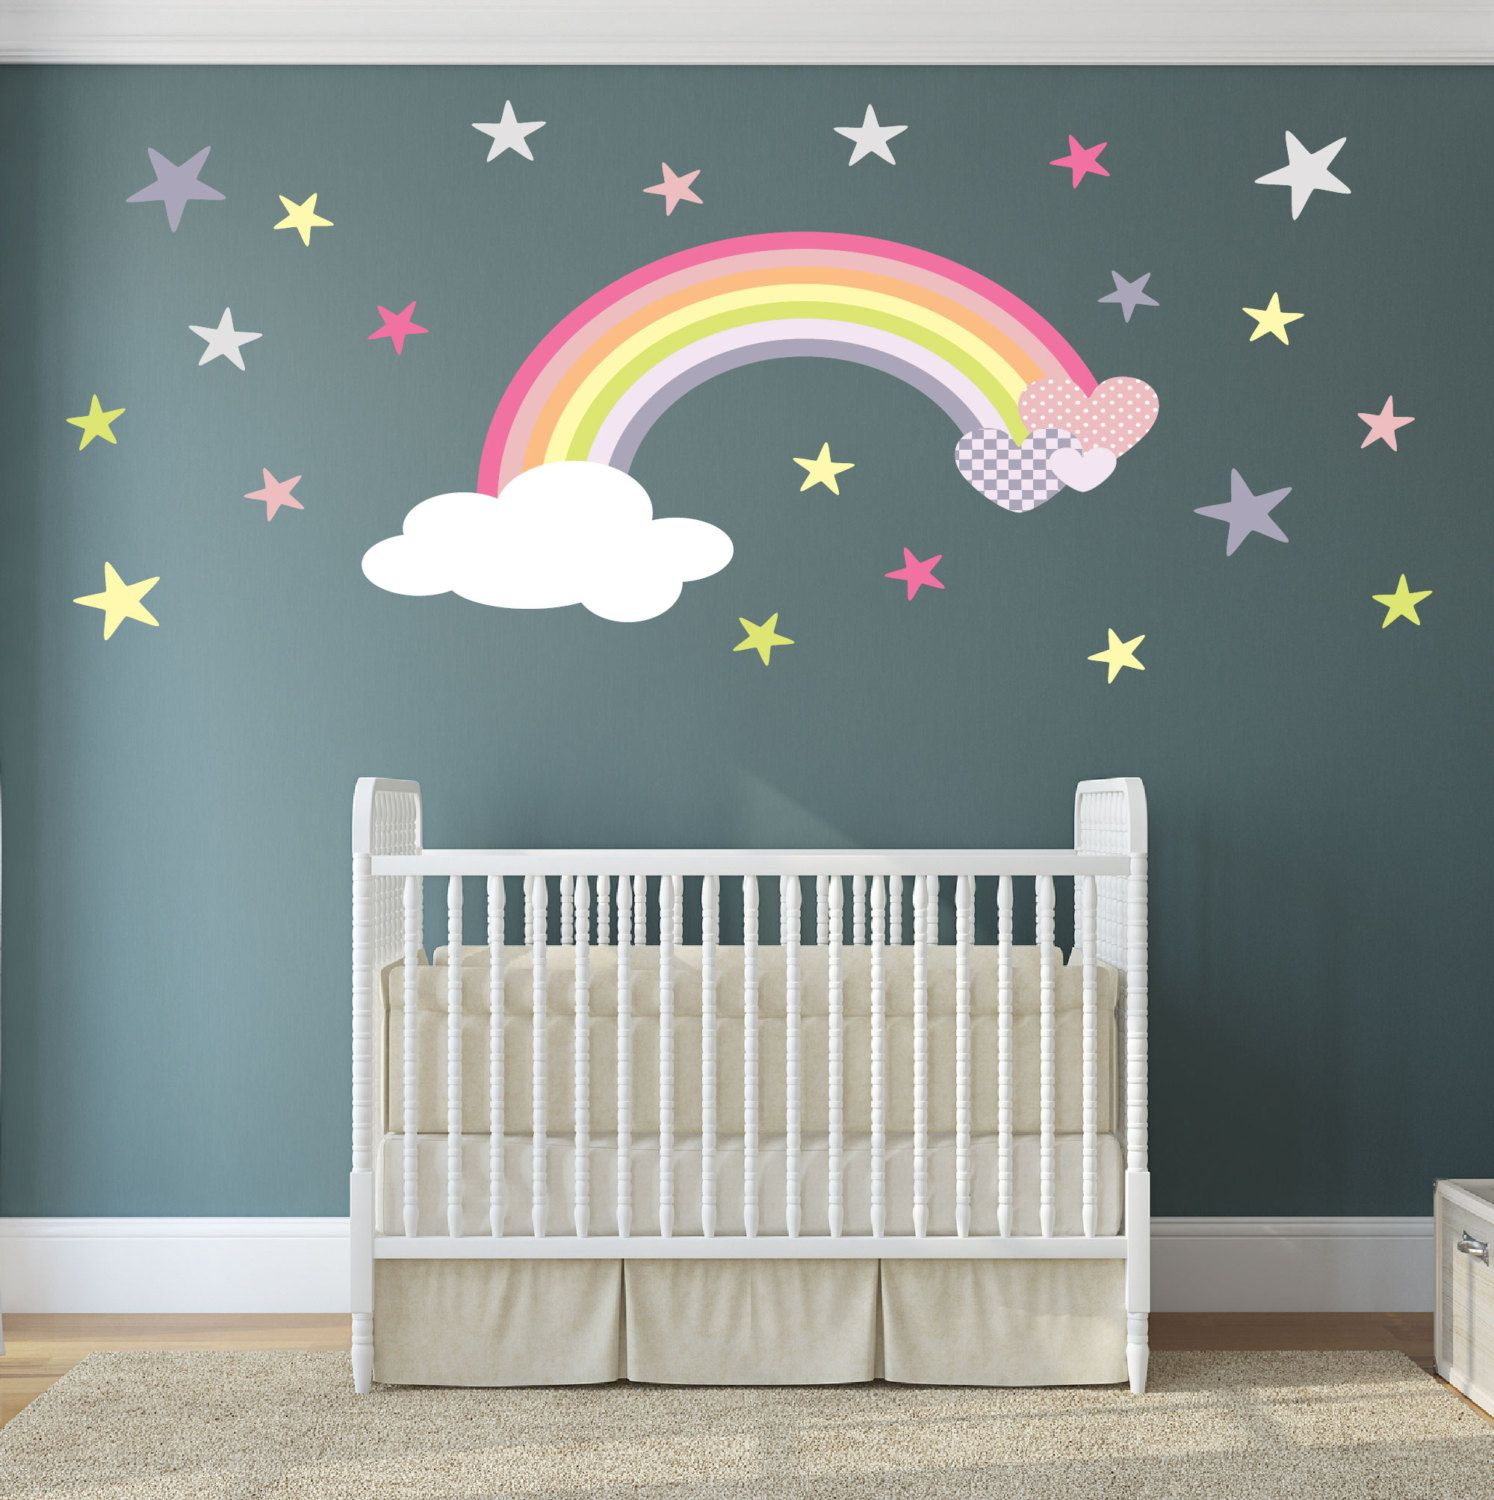 Magical Rainbow Hearts And Stars Nursery Wall Stickers Decal - Bedroom wall decals uk